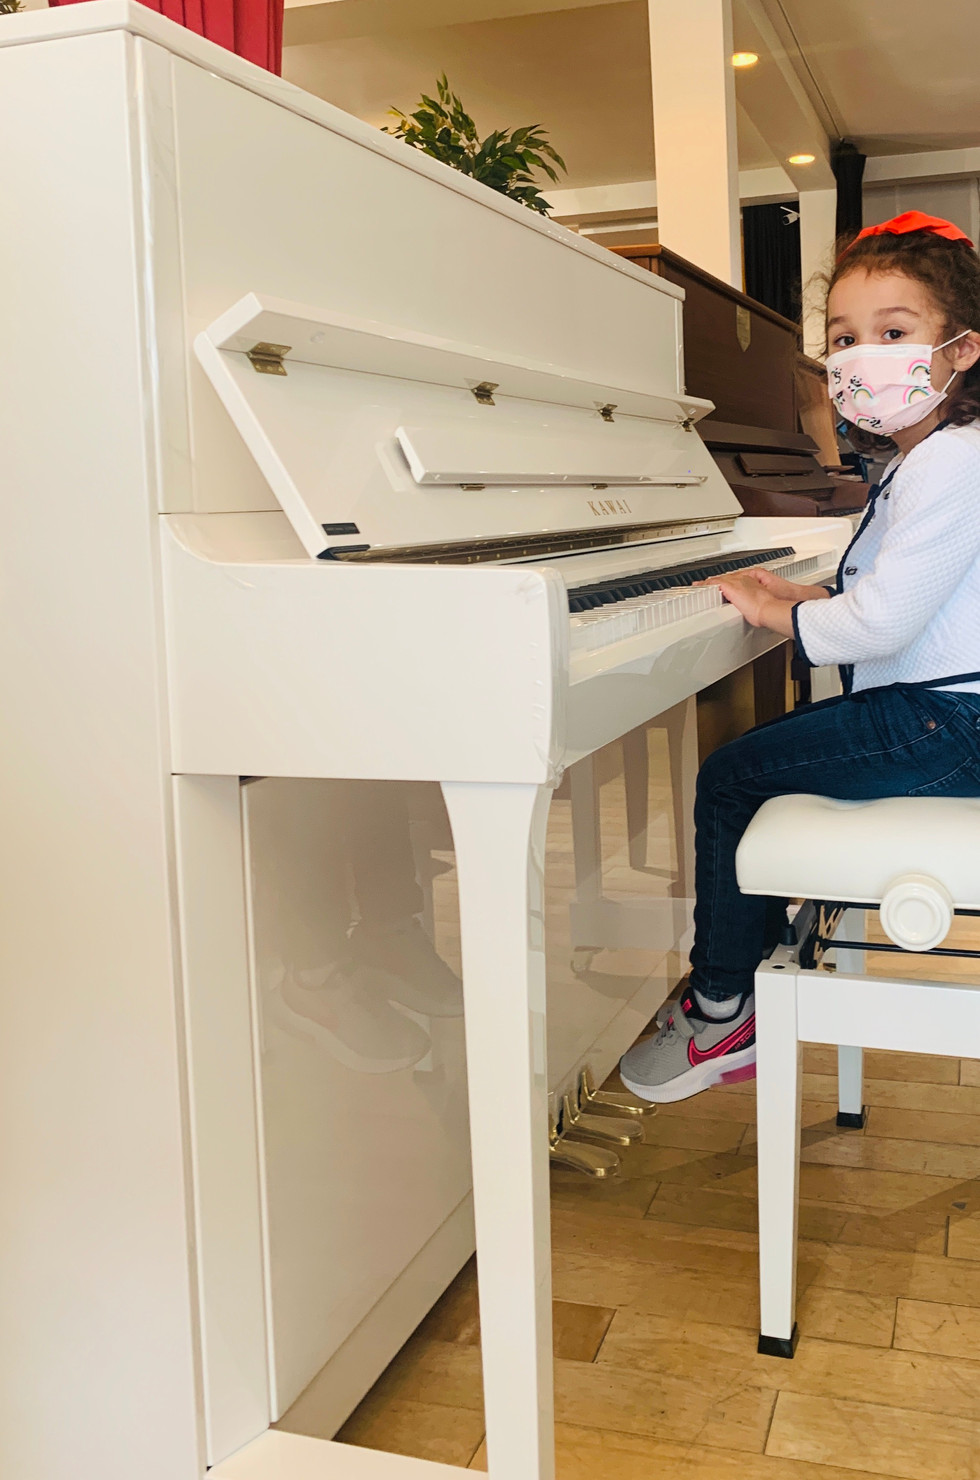 Our lil customer with her new Kawai K300 Snow White